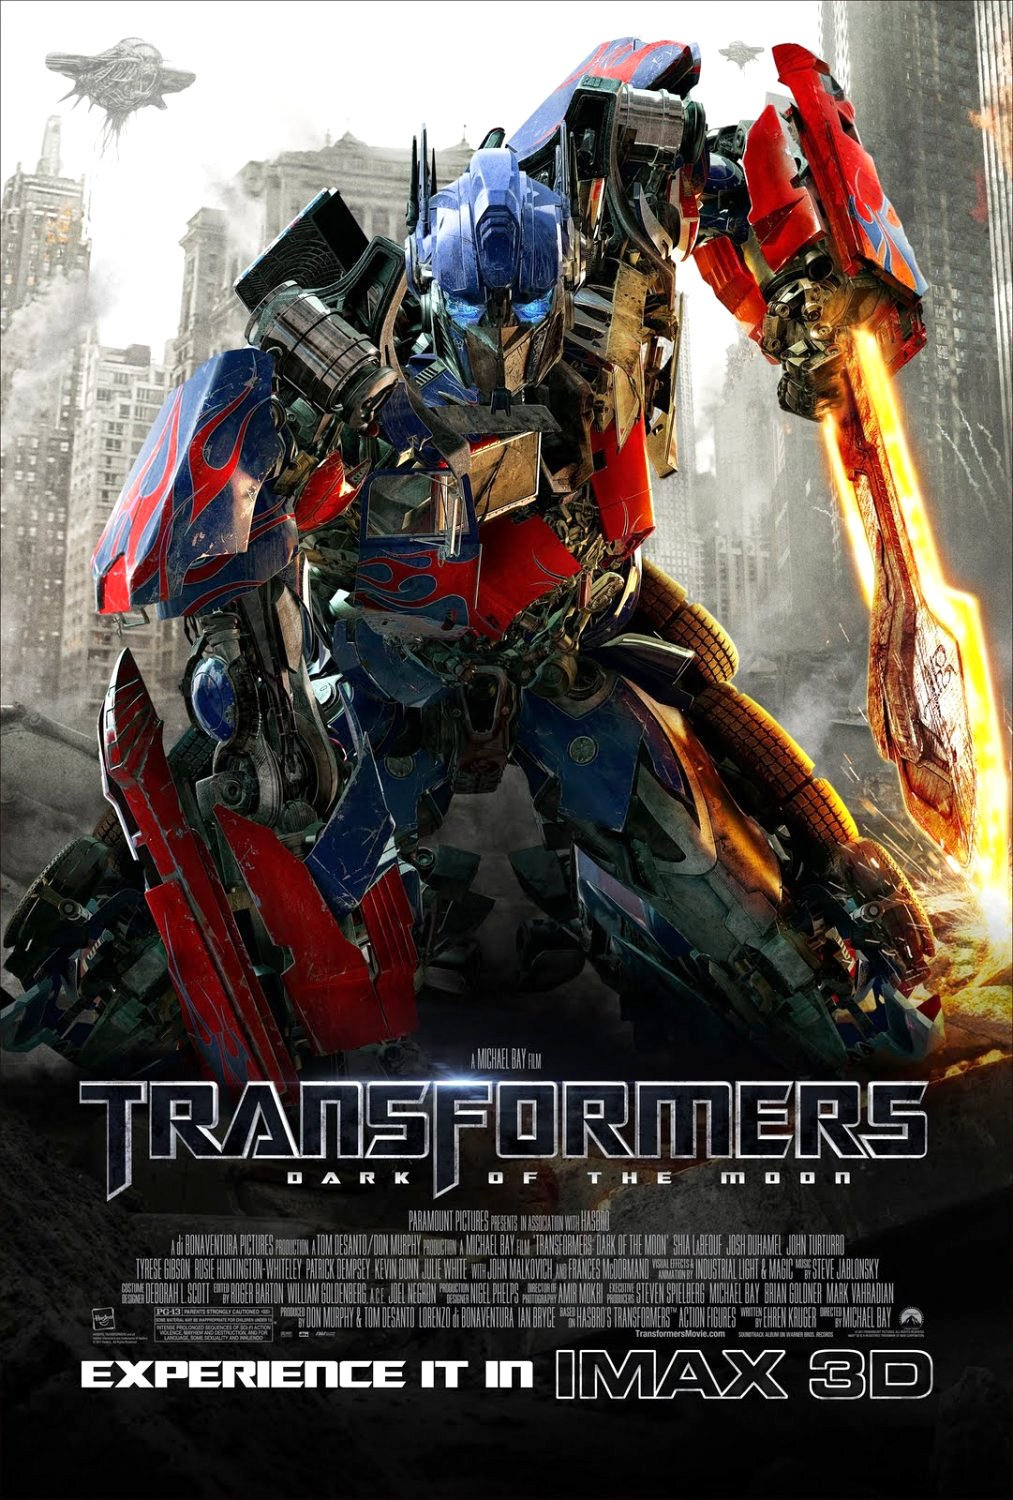 transformers_dark_of_the_moon_poster_2011_04.jpg